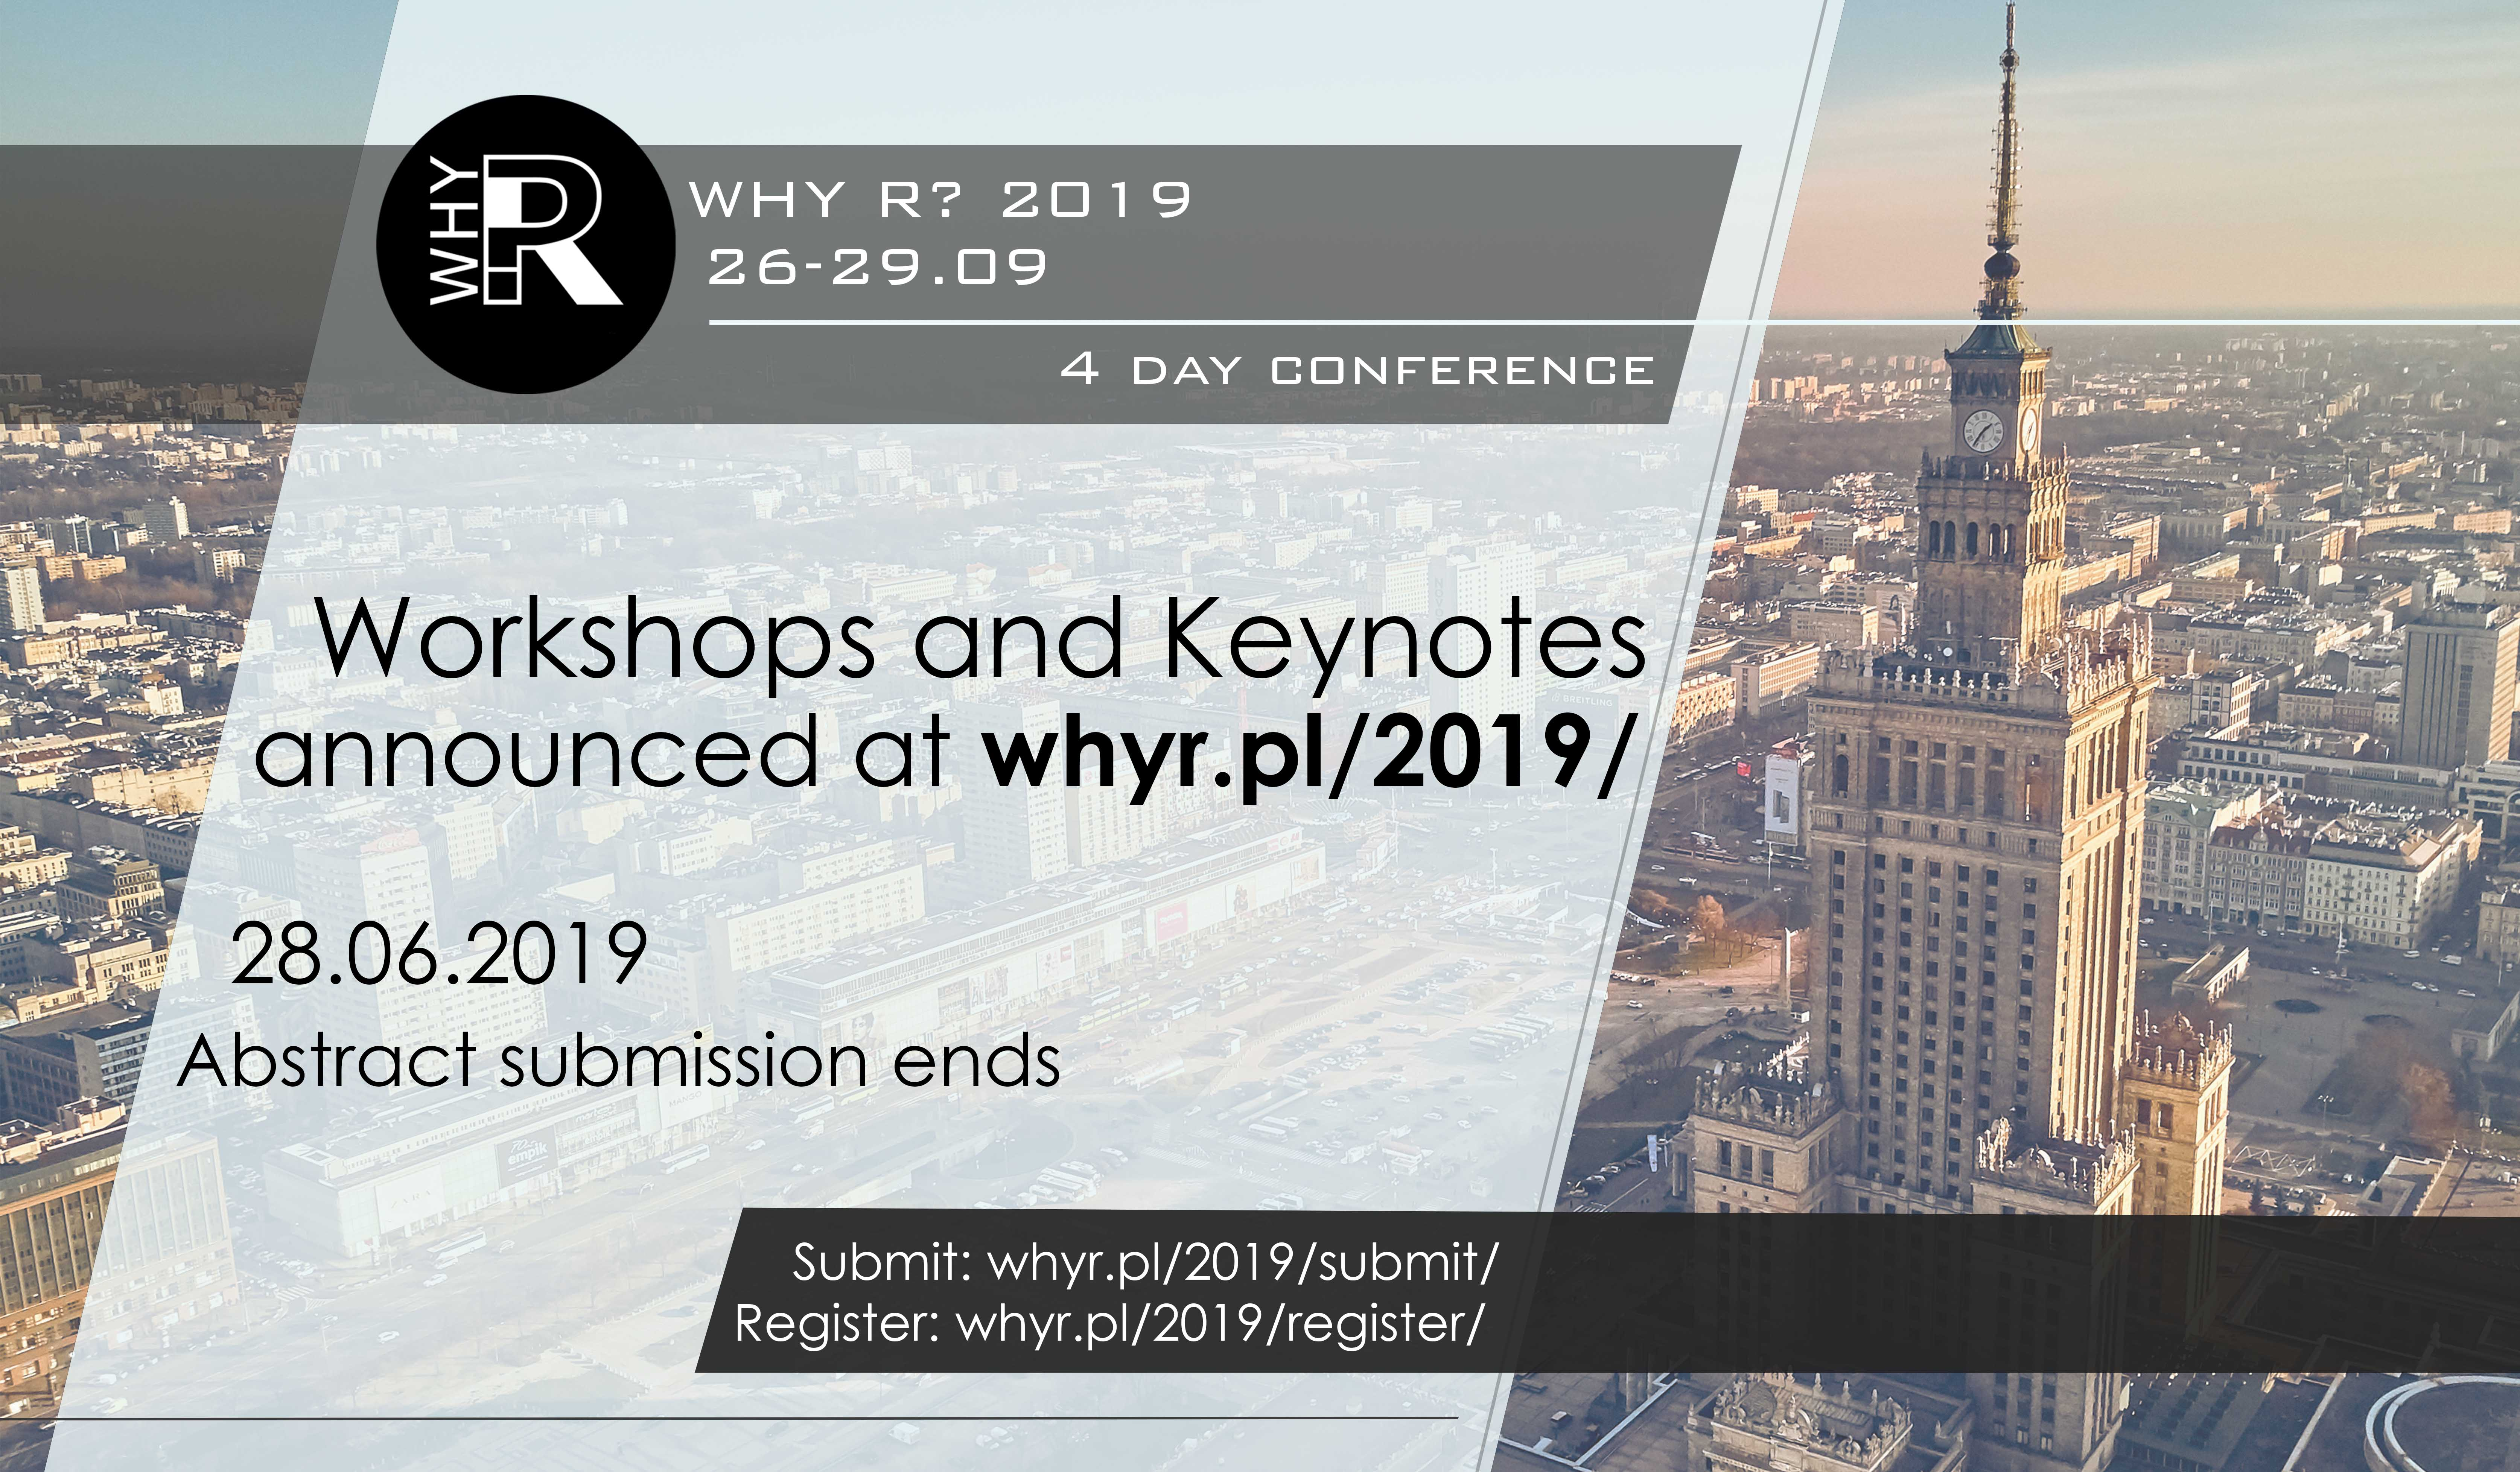 Why R? 2019 Conference – Keynotes and Workshops announced